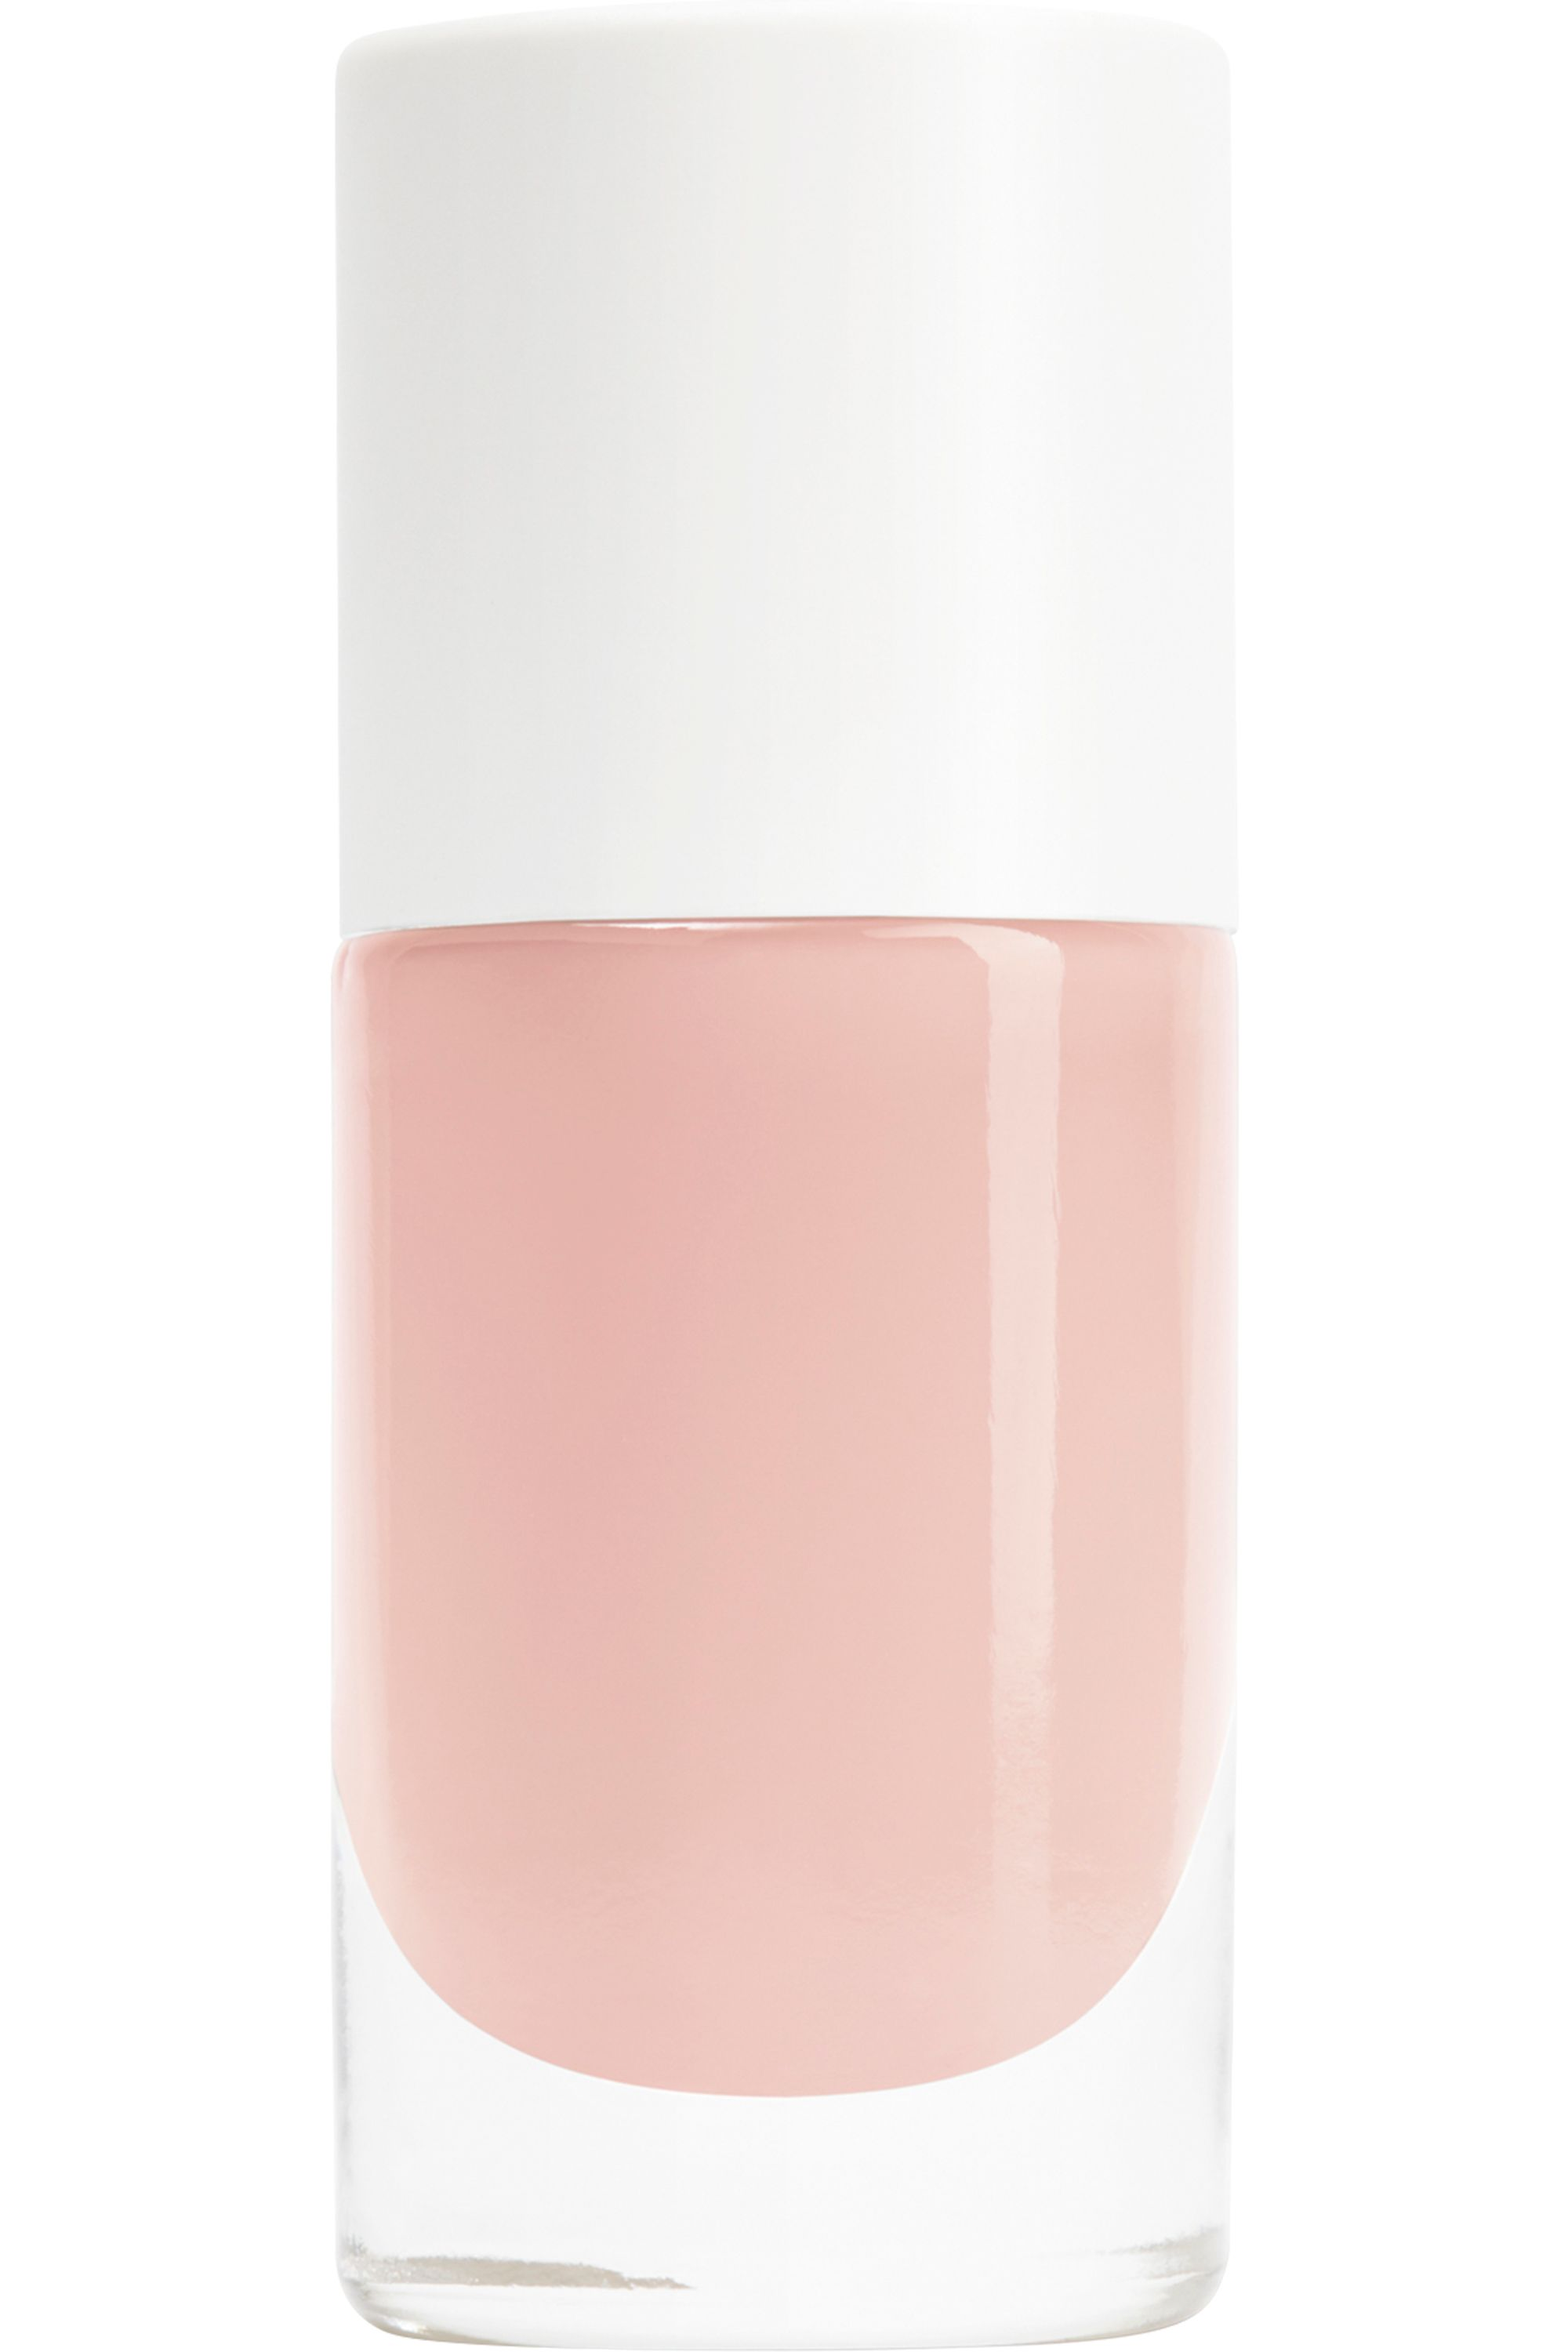 Blissim : Nailmatic - Vernis à ongles Pure Color - Pure Color Sasha